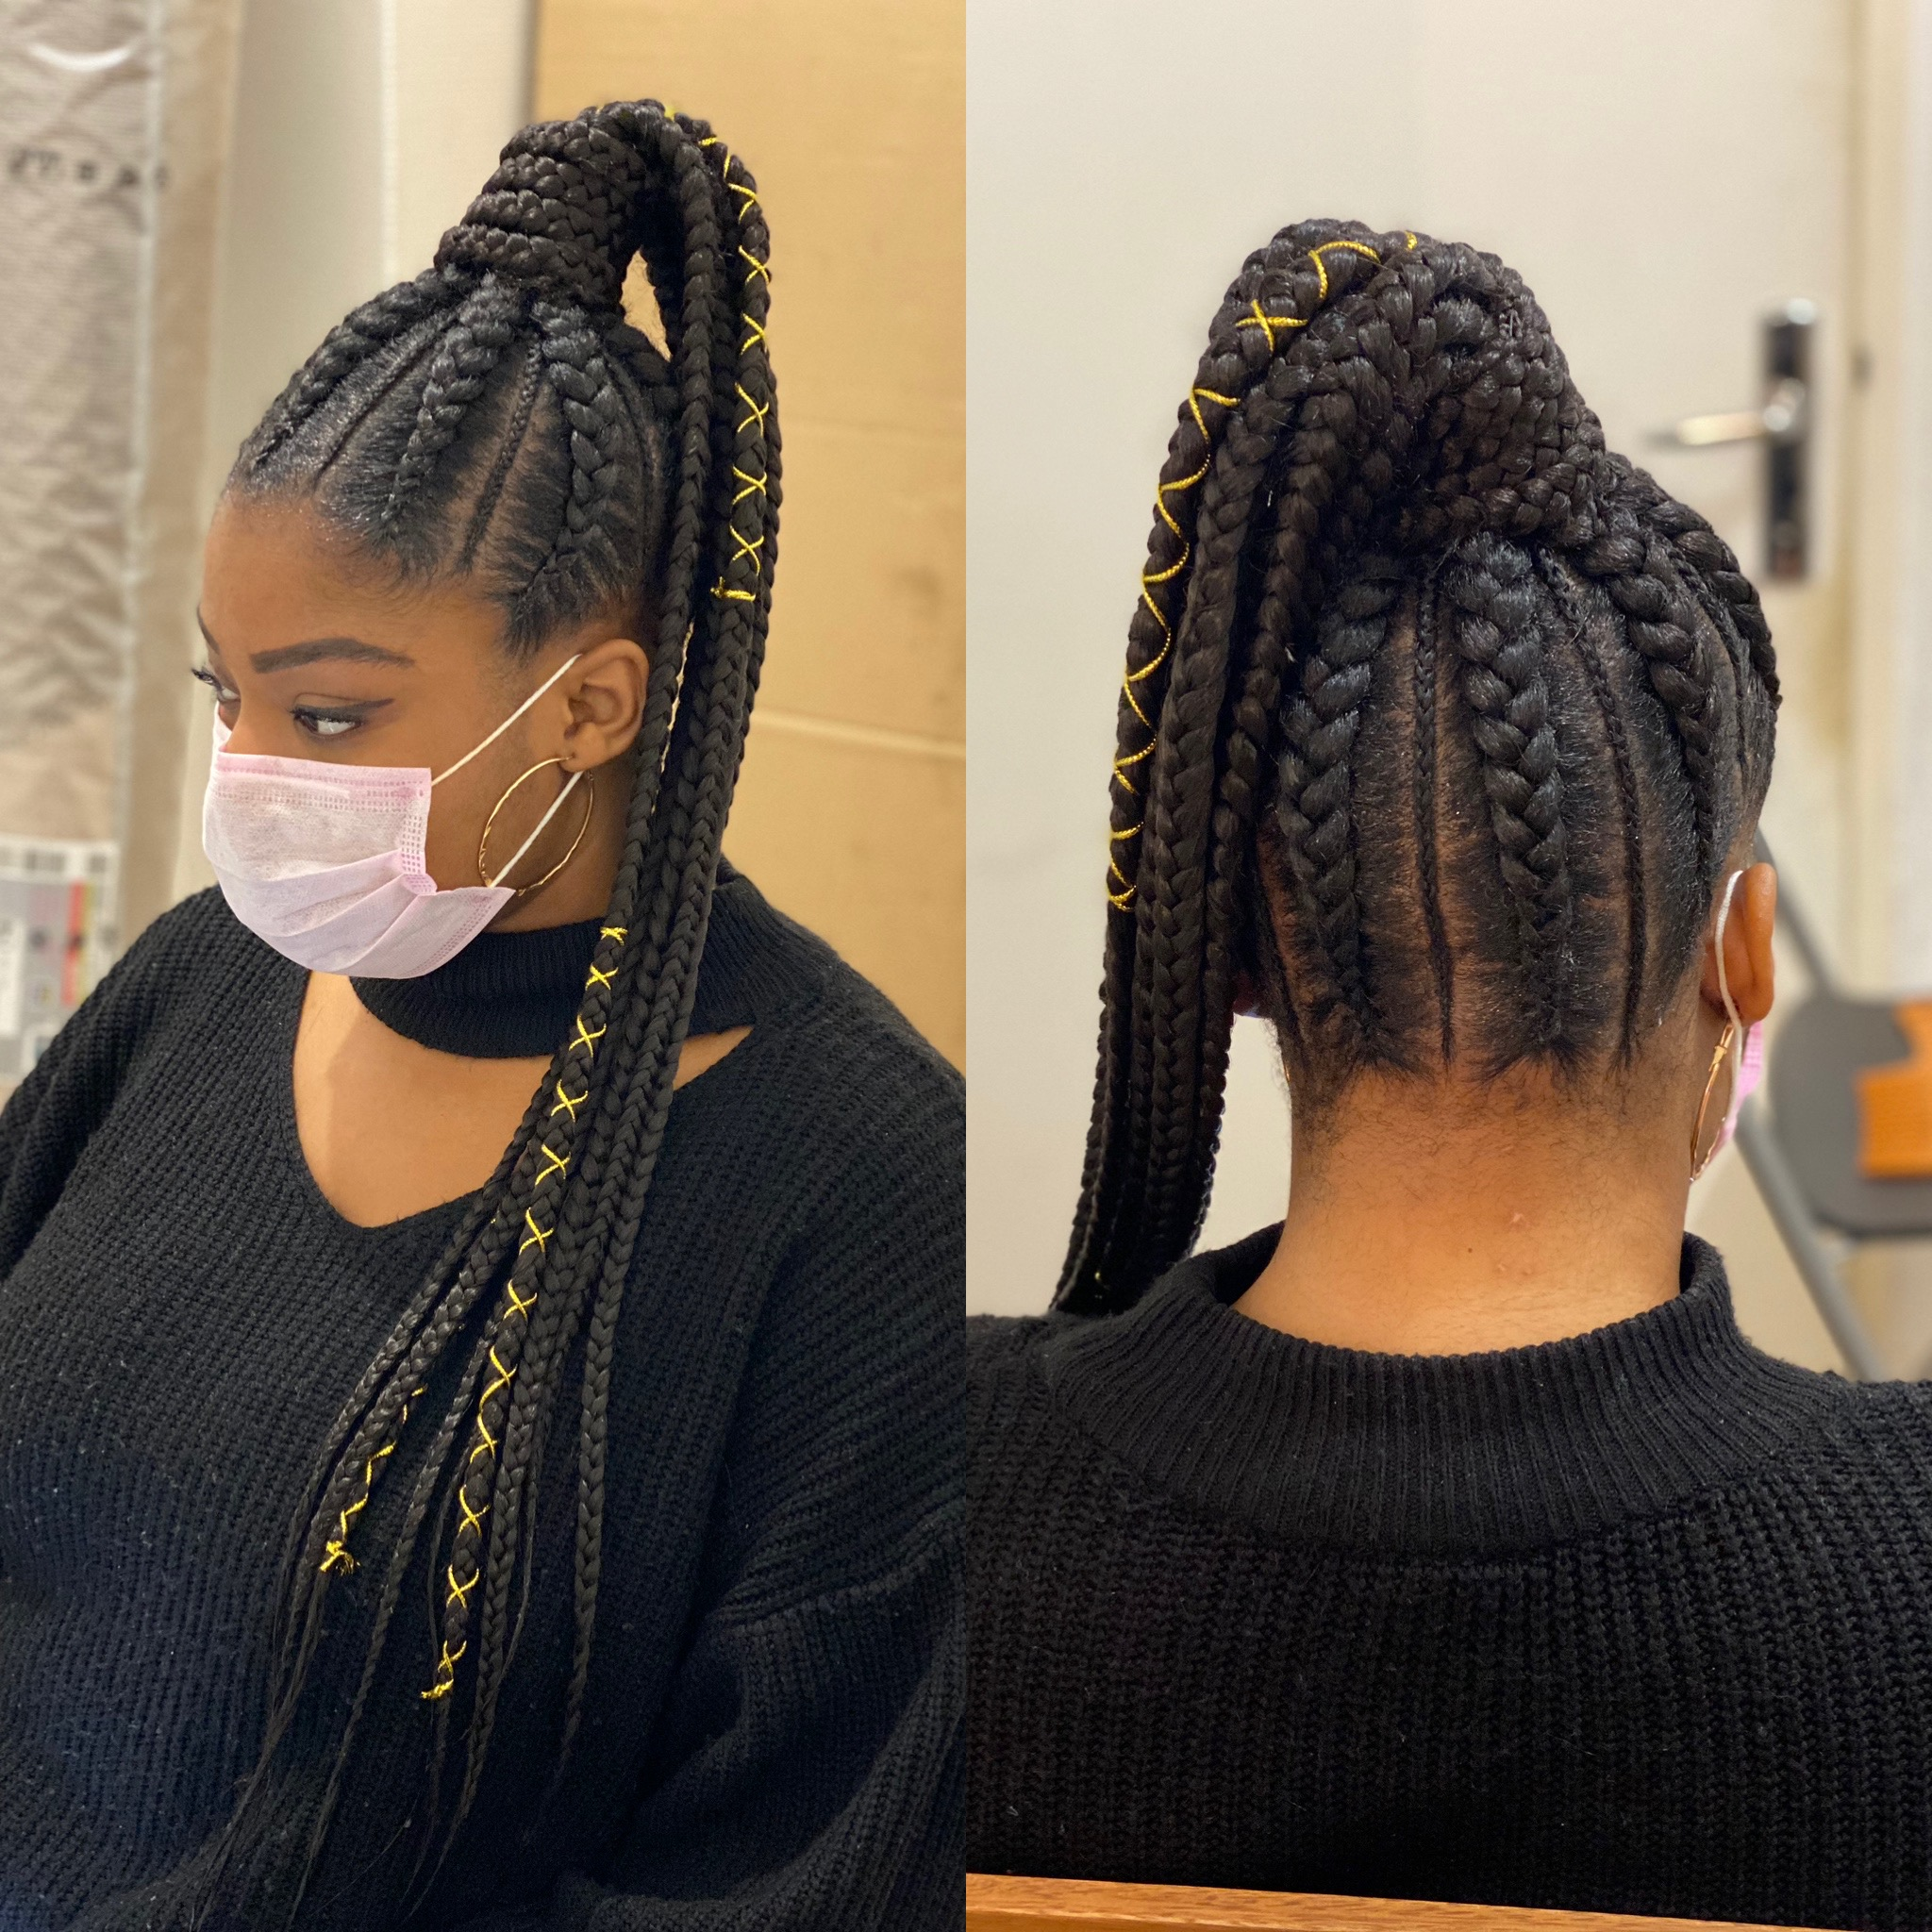 salon de coiffure afro tresse tresses box braids crochet braids vanilles tissages paris 75 77 78 91 92 93 94 95 PPCIFQMD